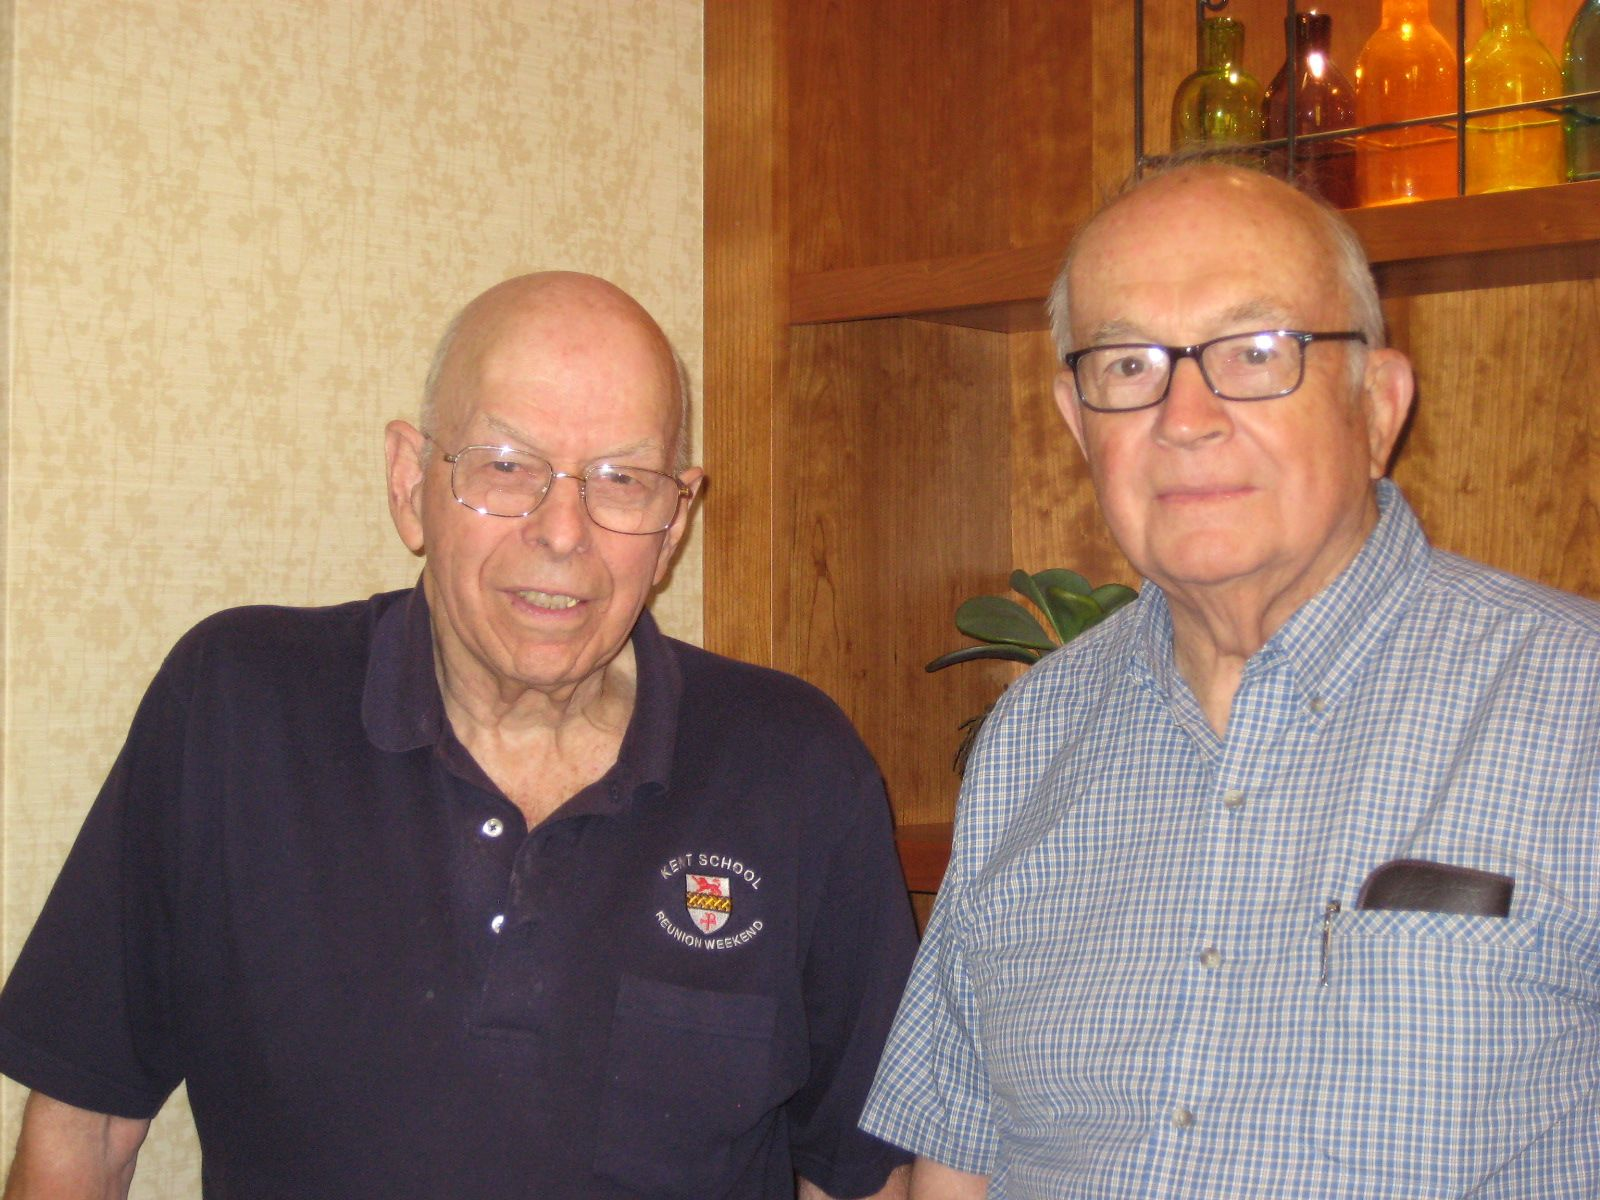 Former faculty member Brud Humphreys with Fred Rice '47 at New Pond Village, Walpole on July 30, 2014.